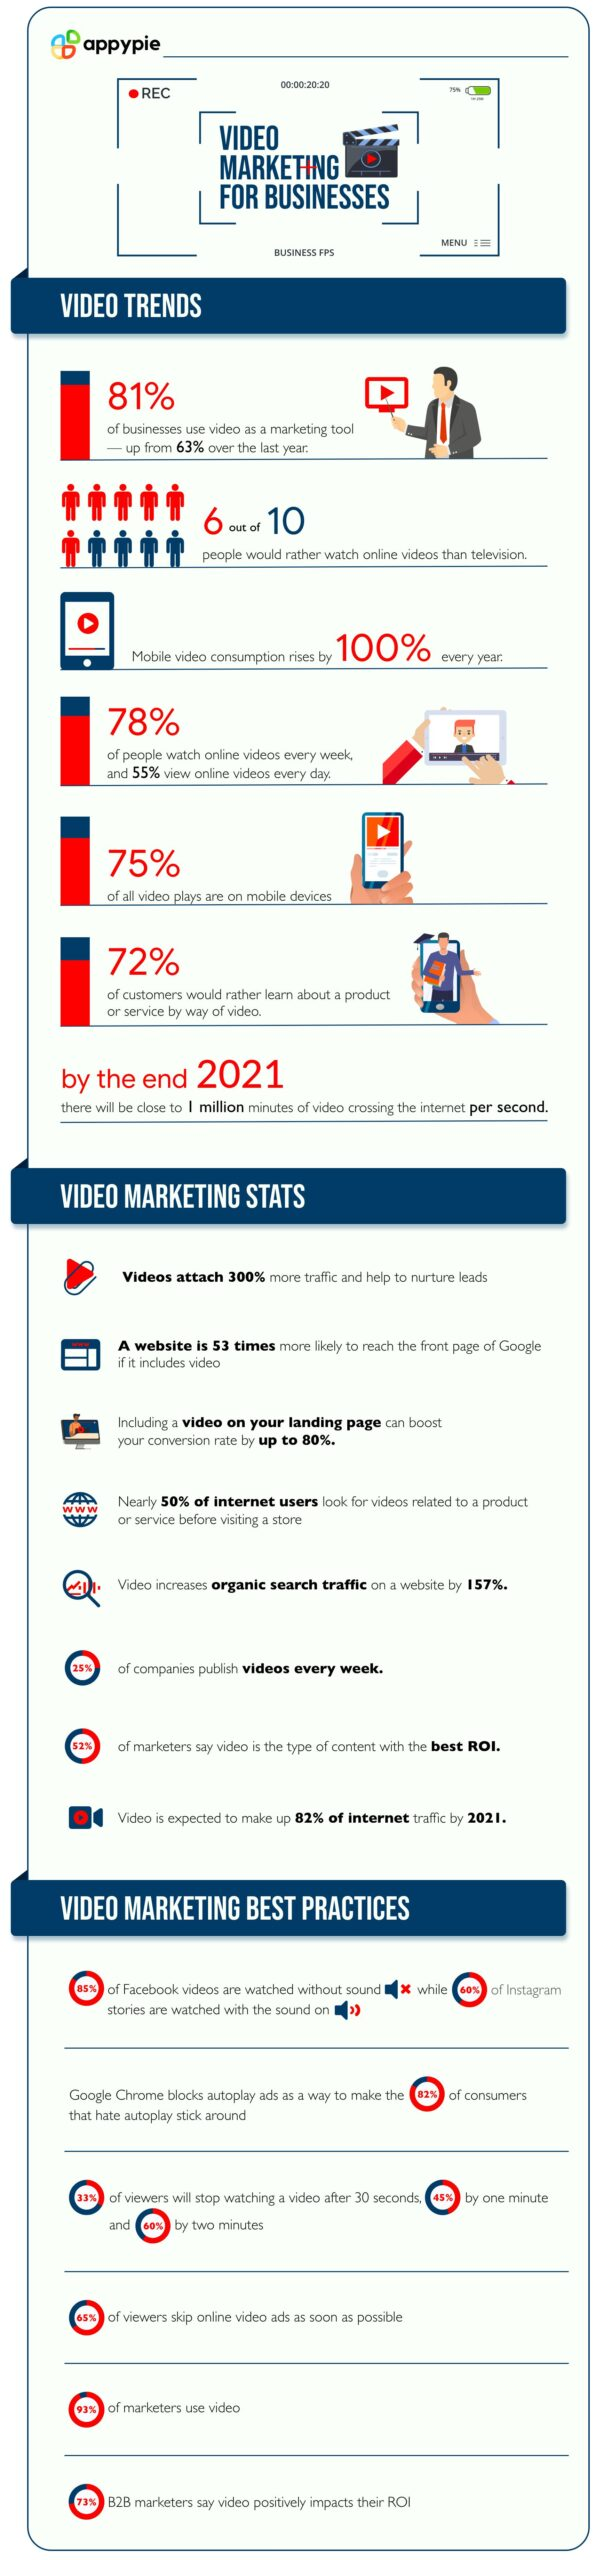 Video Marketing for businesses in 2021 - Appy Pie